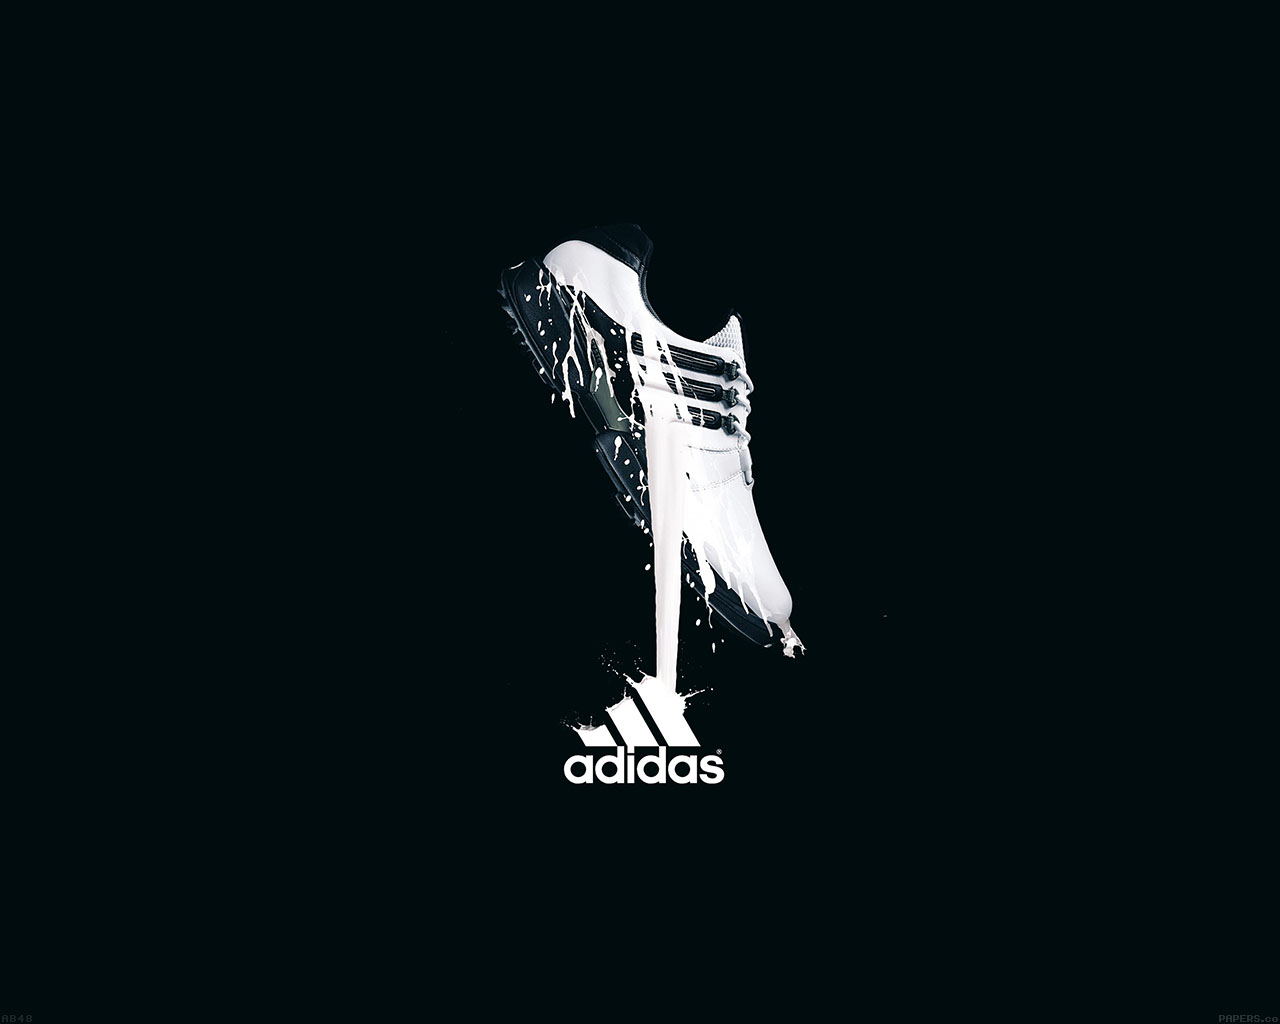 Wallpaper For Desktop Laptop Ab48 Wallpaper Adidas Black